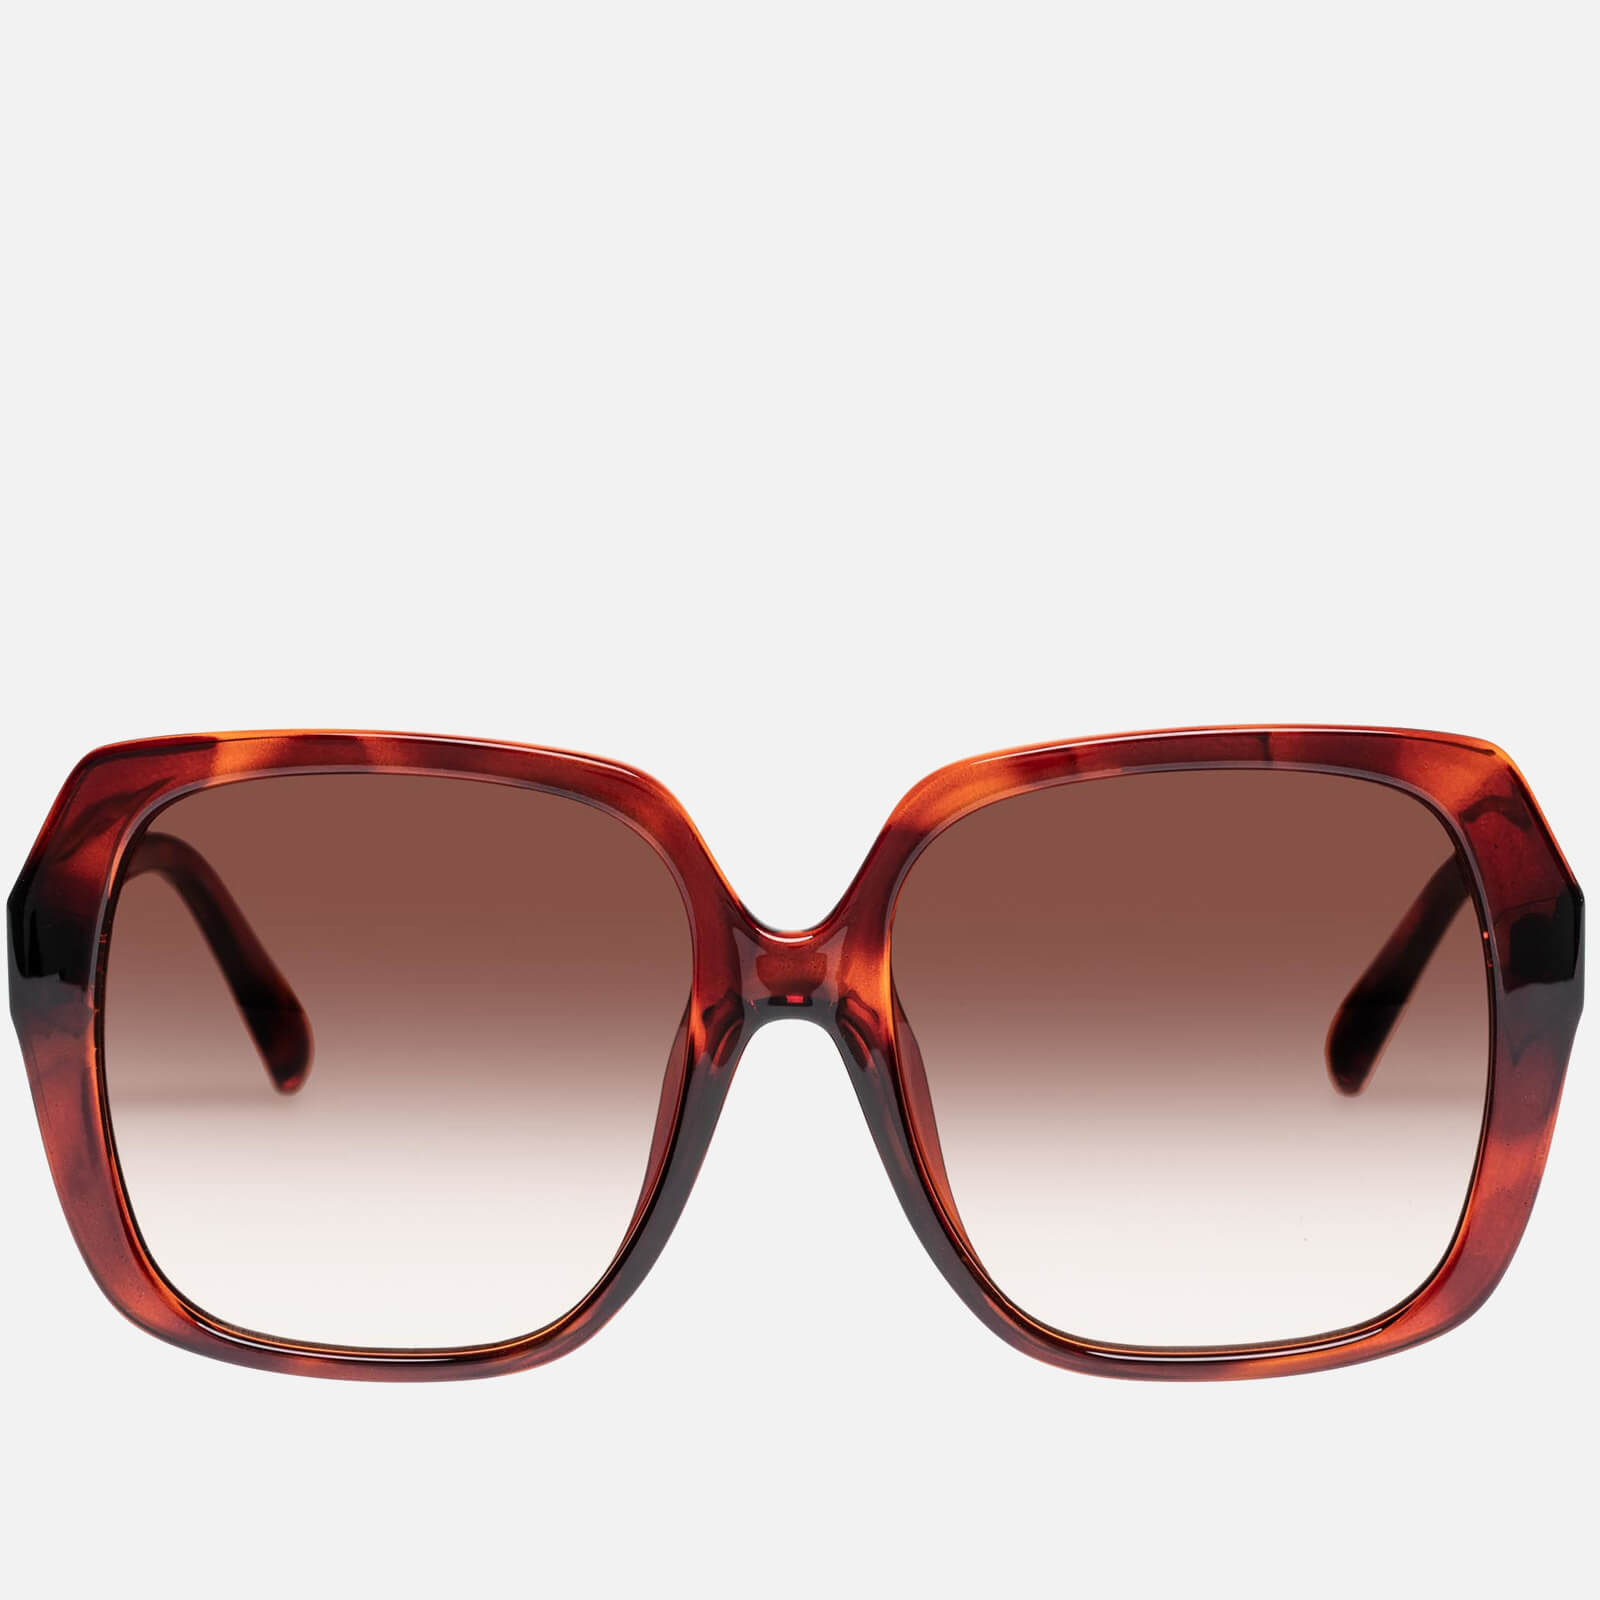 Le Specs Women's Frofro Oversized Sunglasses - Toffee Tort